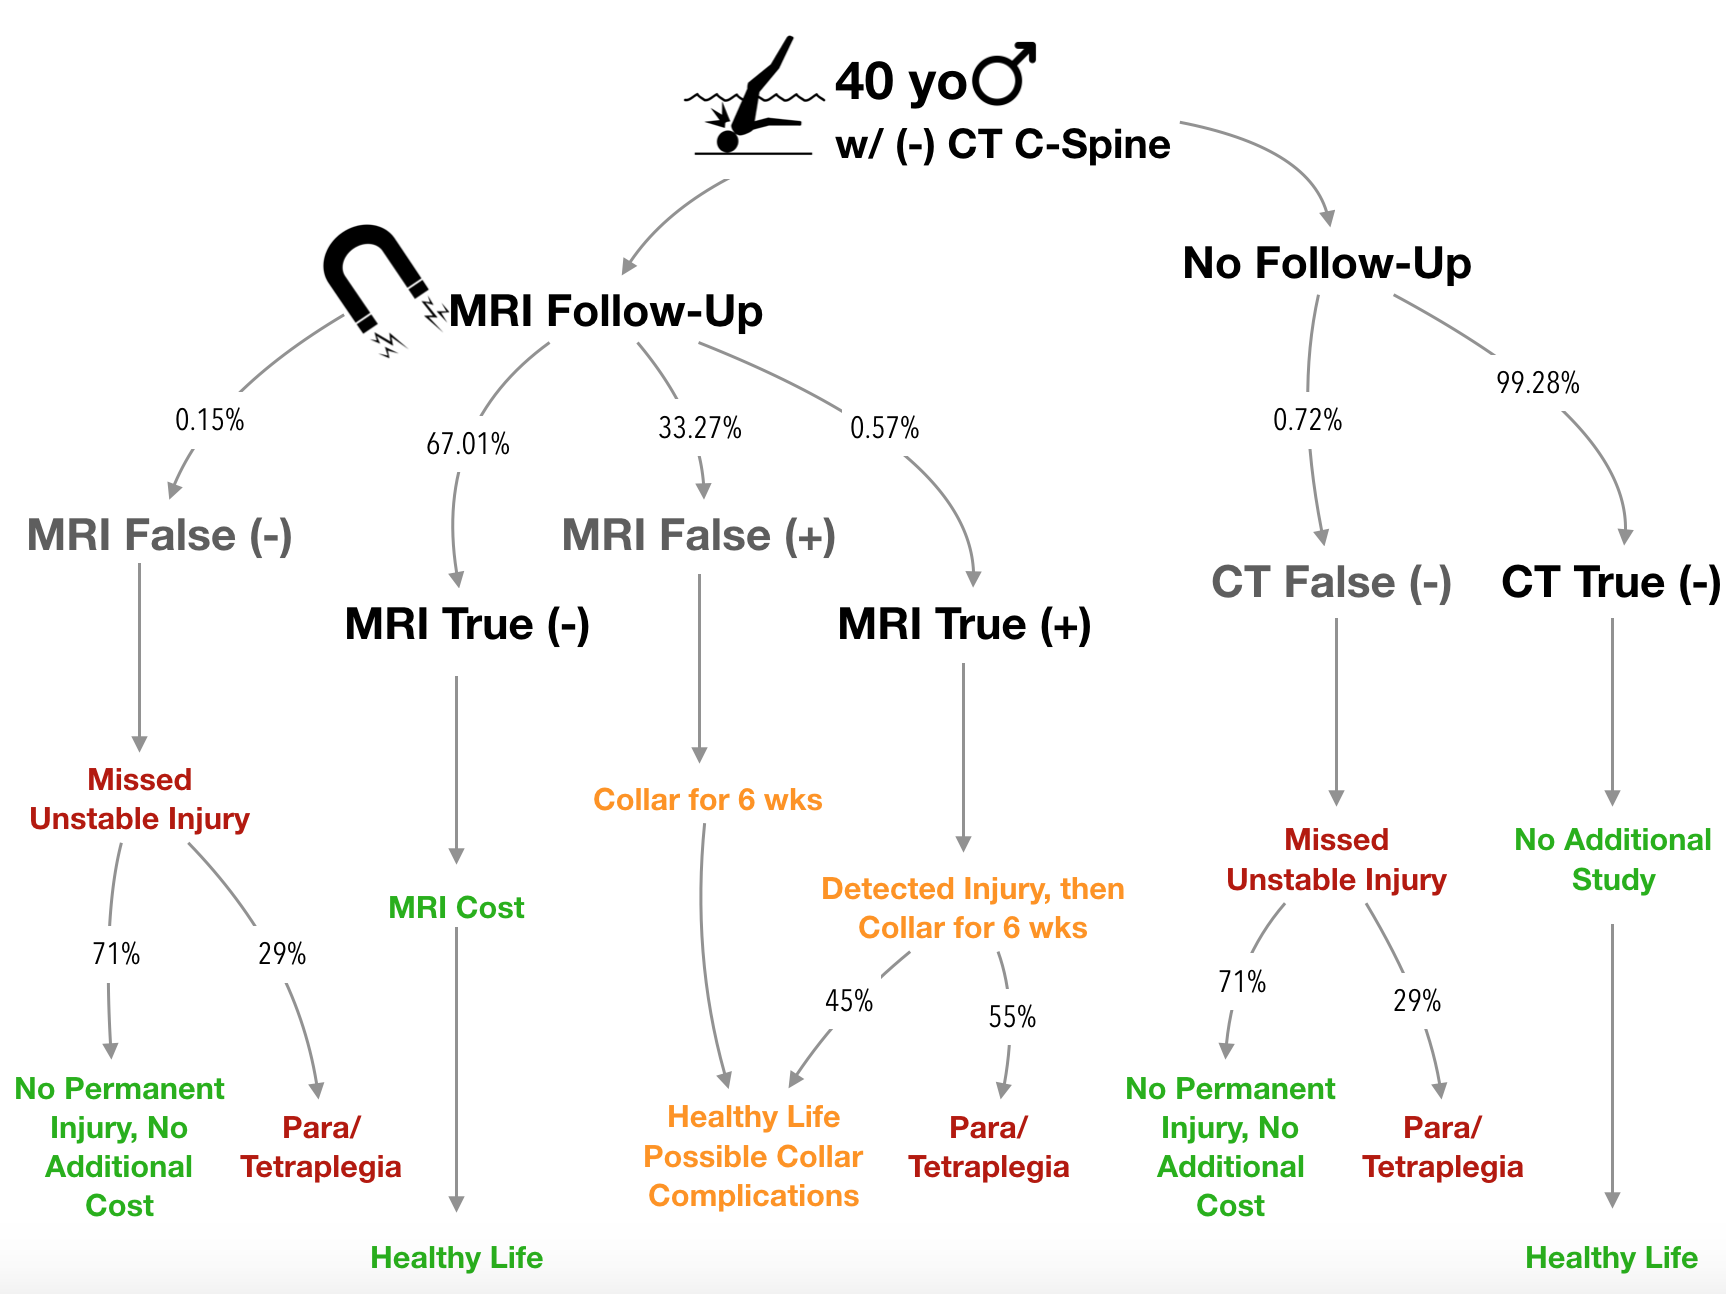 Figure 1 - Decision Model Used by Wu and Colleagues